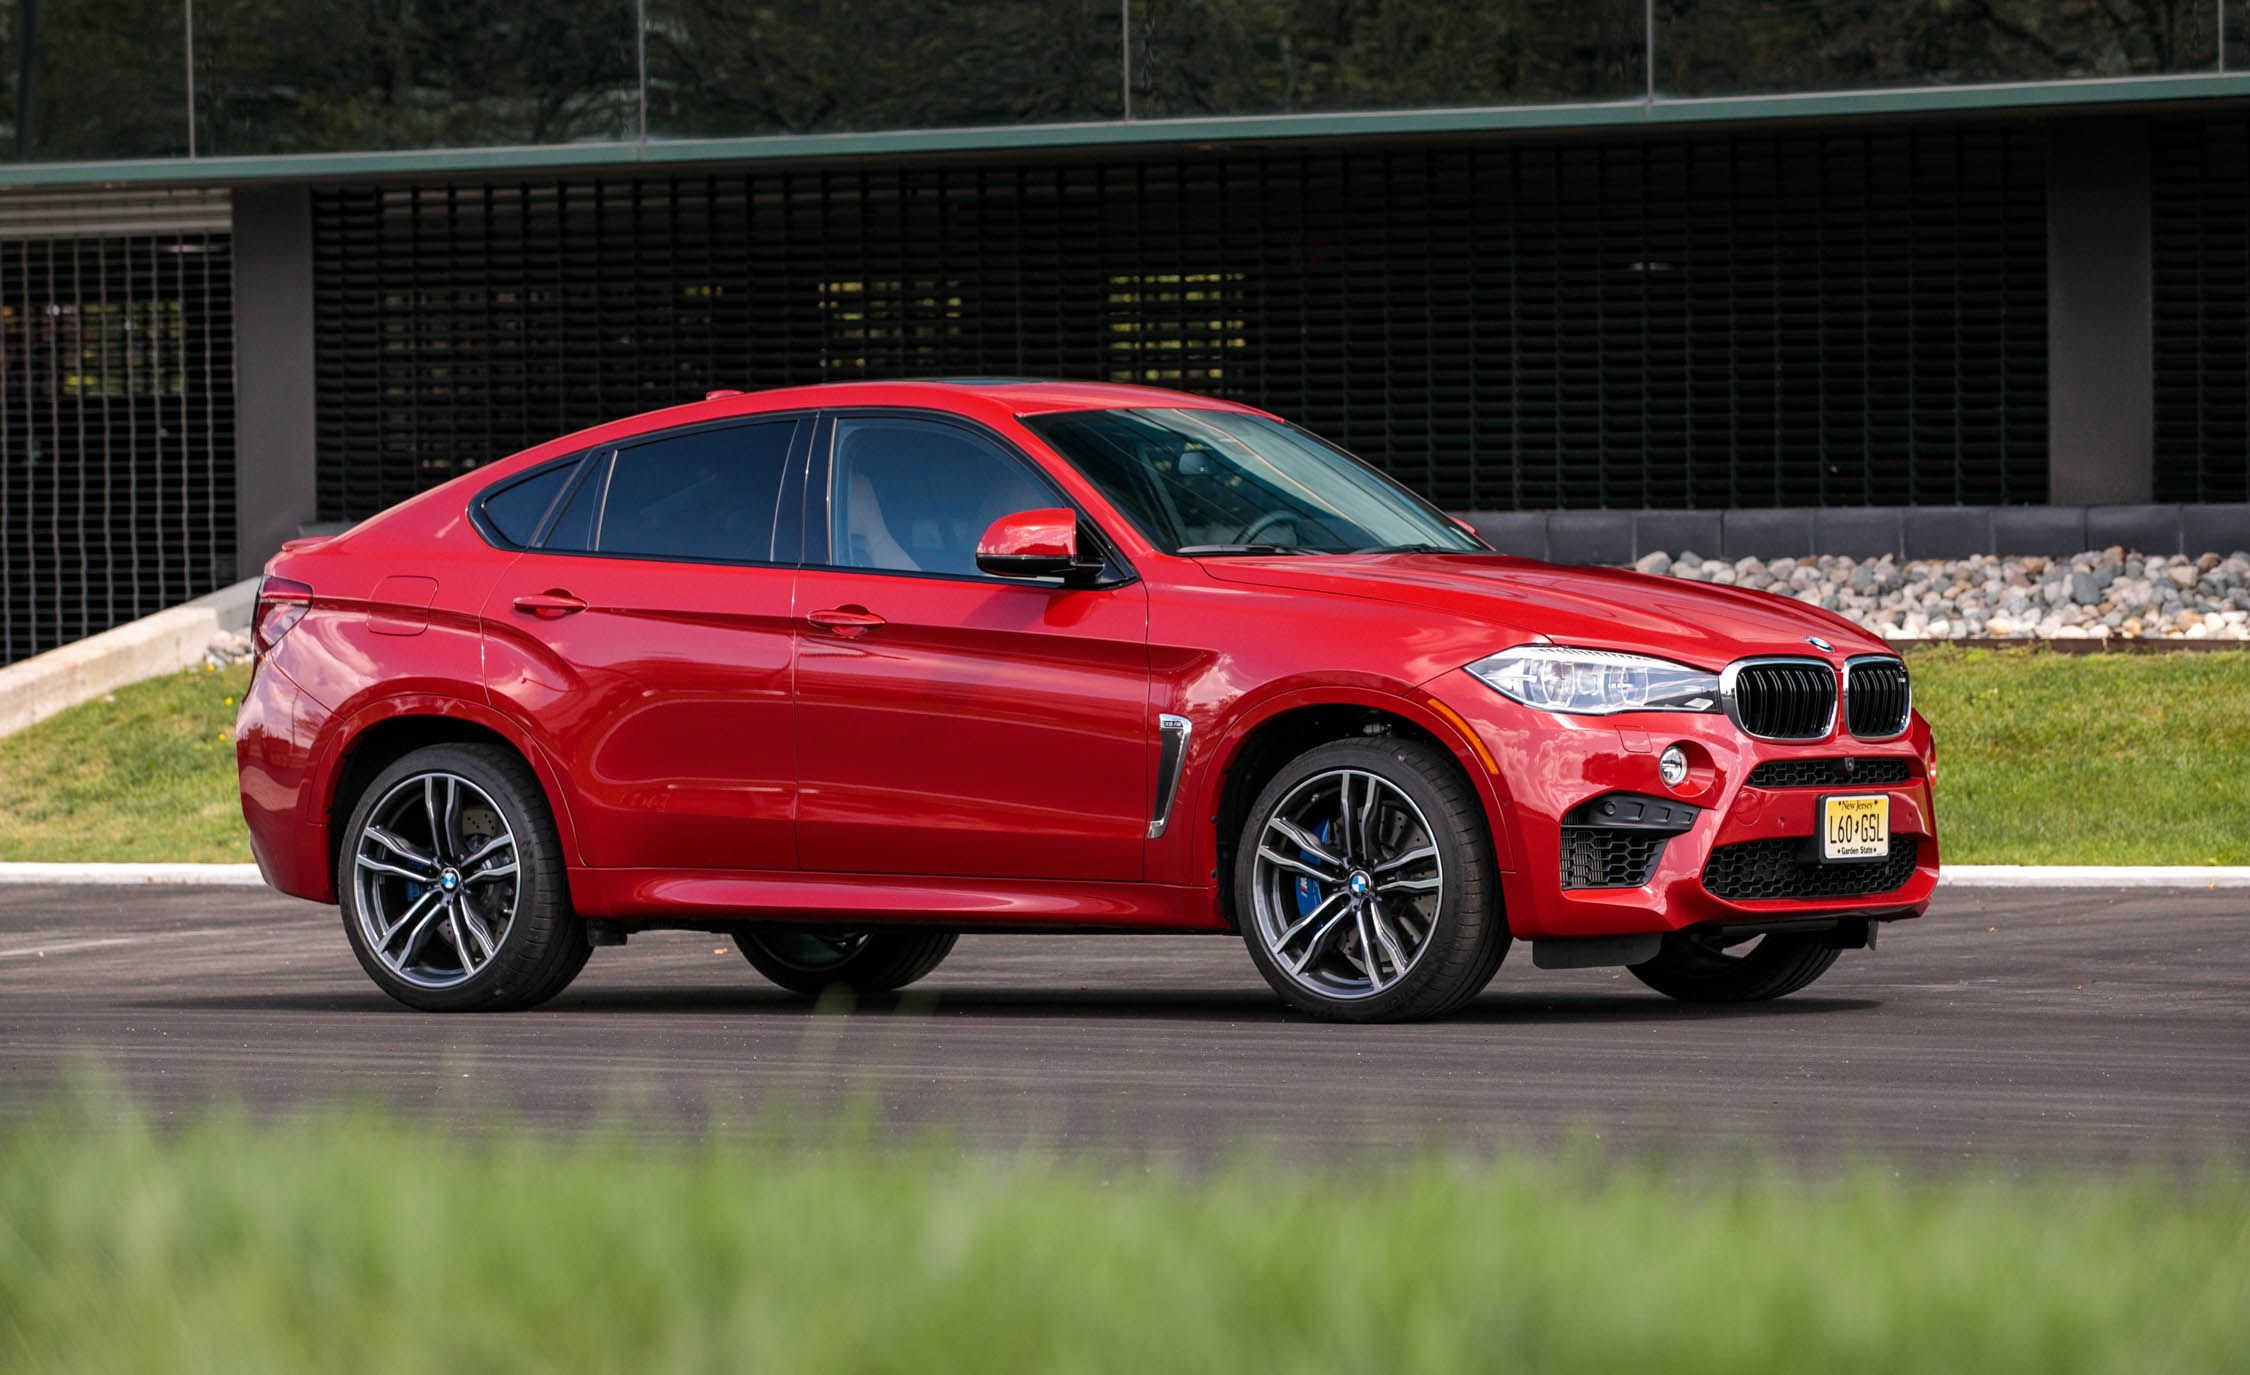 2018 Bmw X6 M Video Review Car And Driver